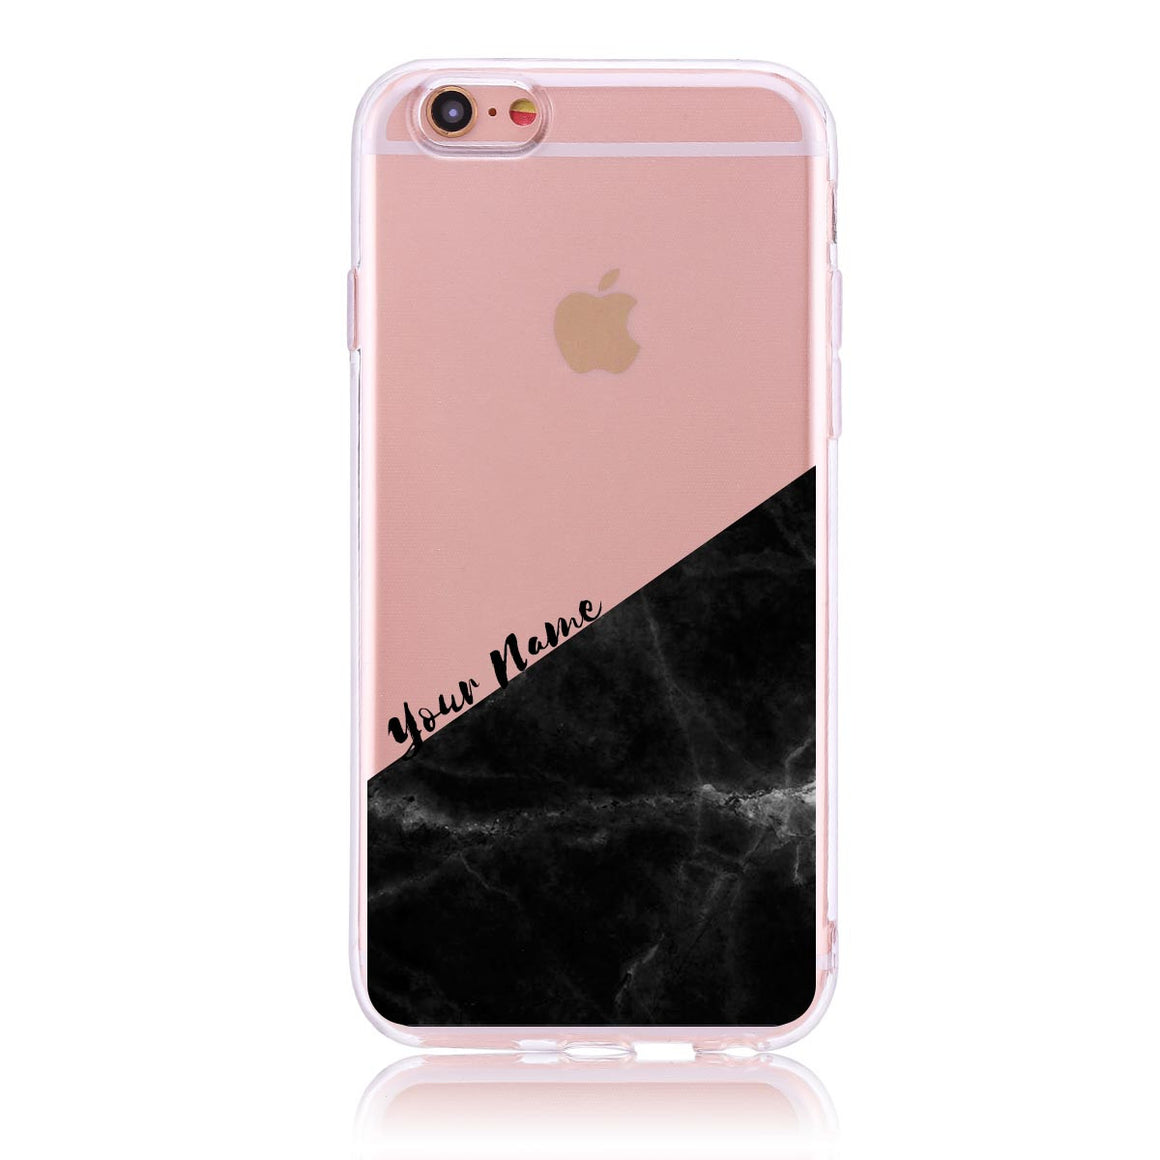 Black Marble Cut - iPhone 6 Plus/6s Plus Customised Case